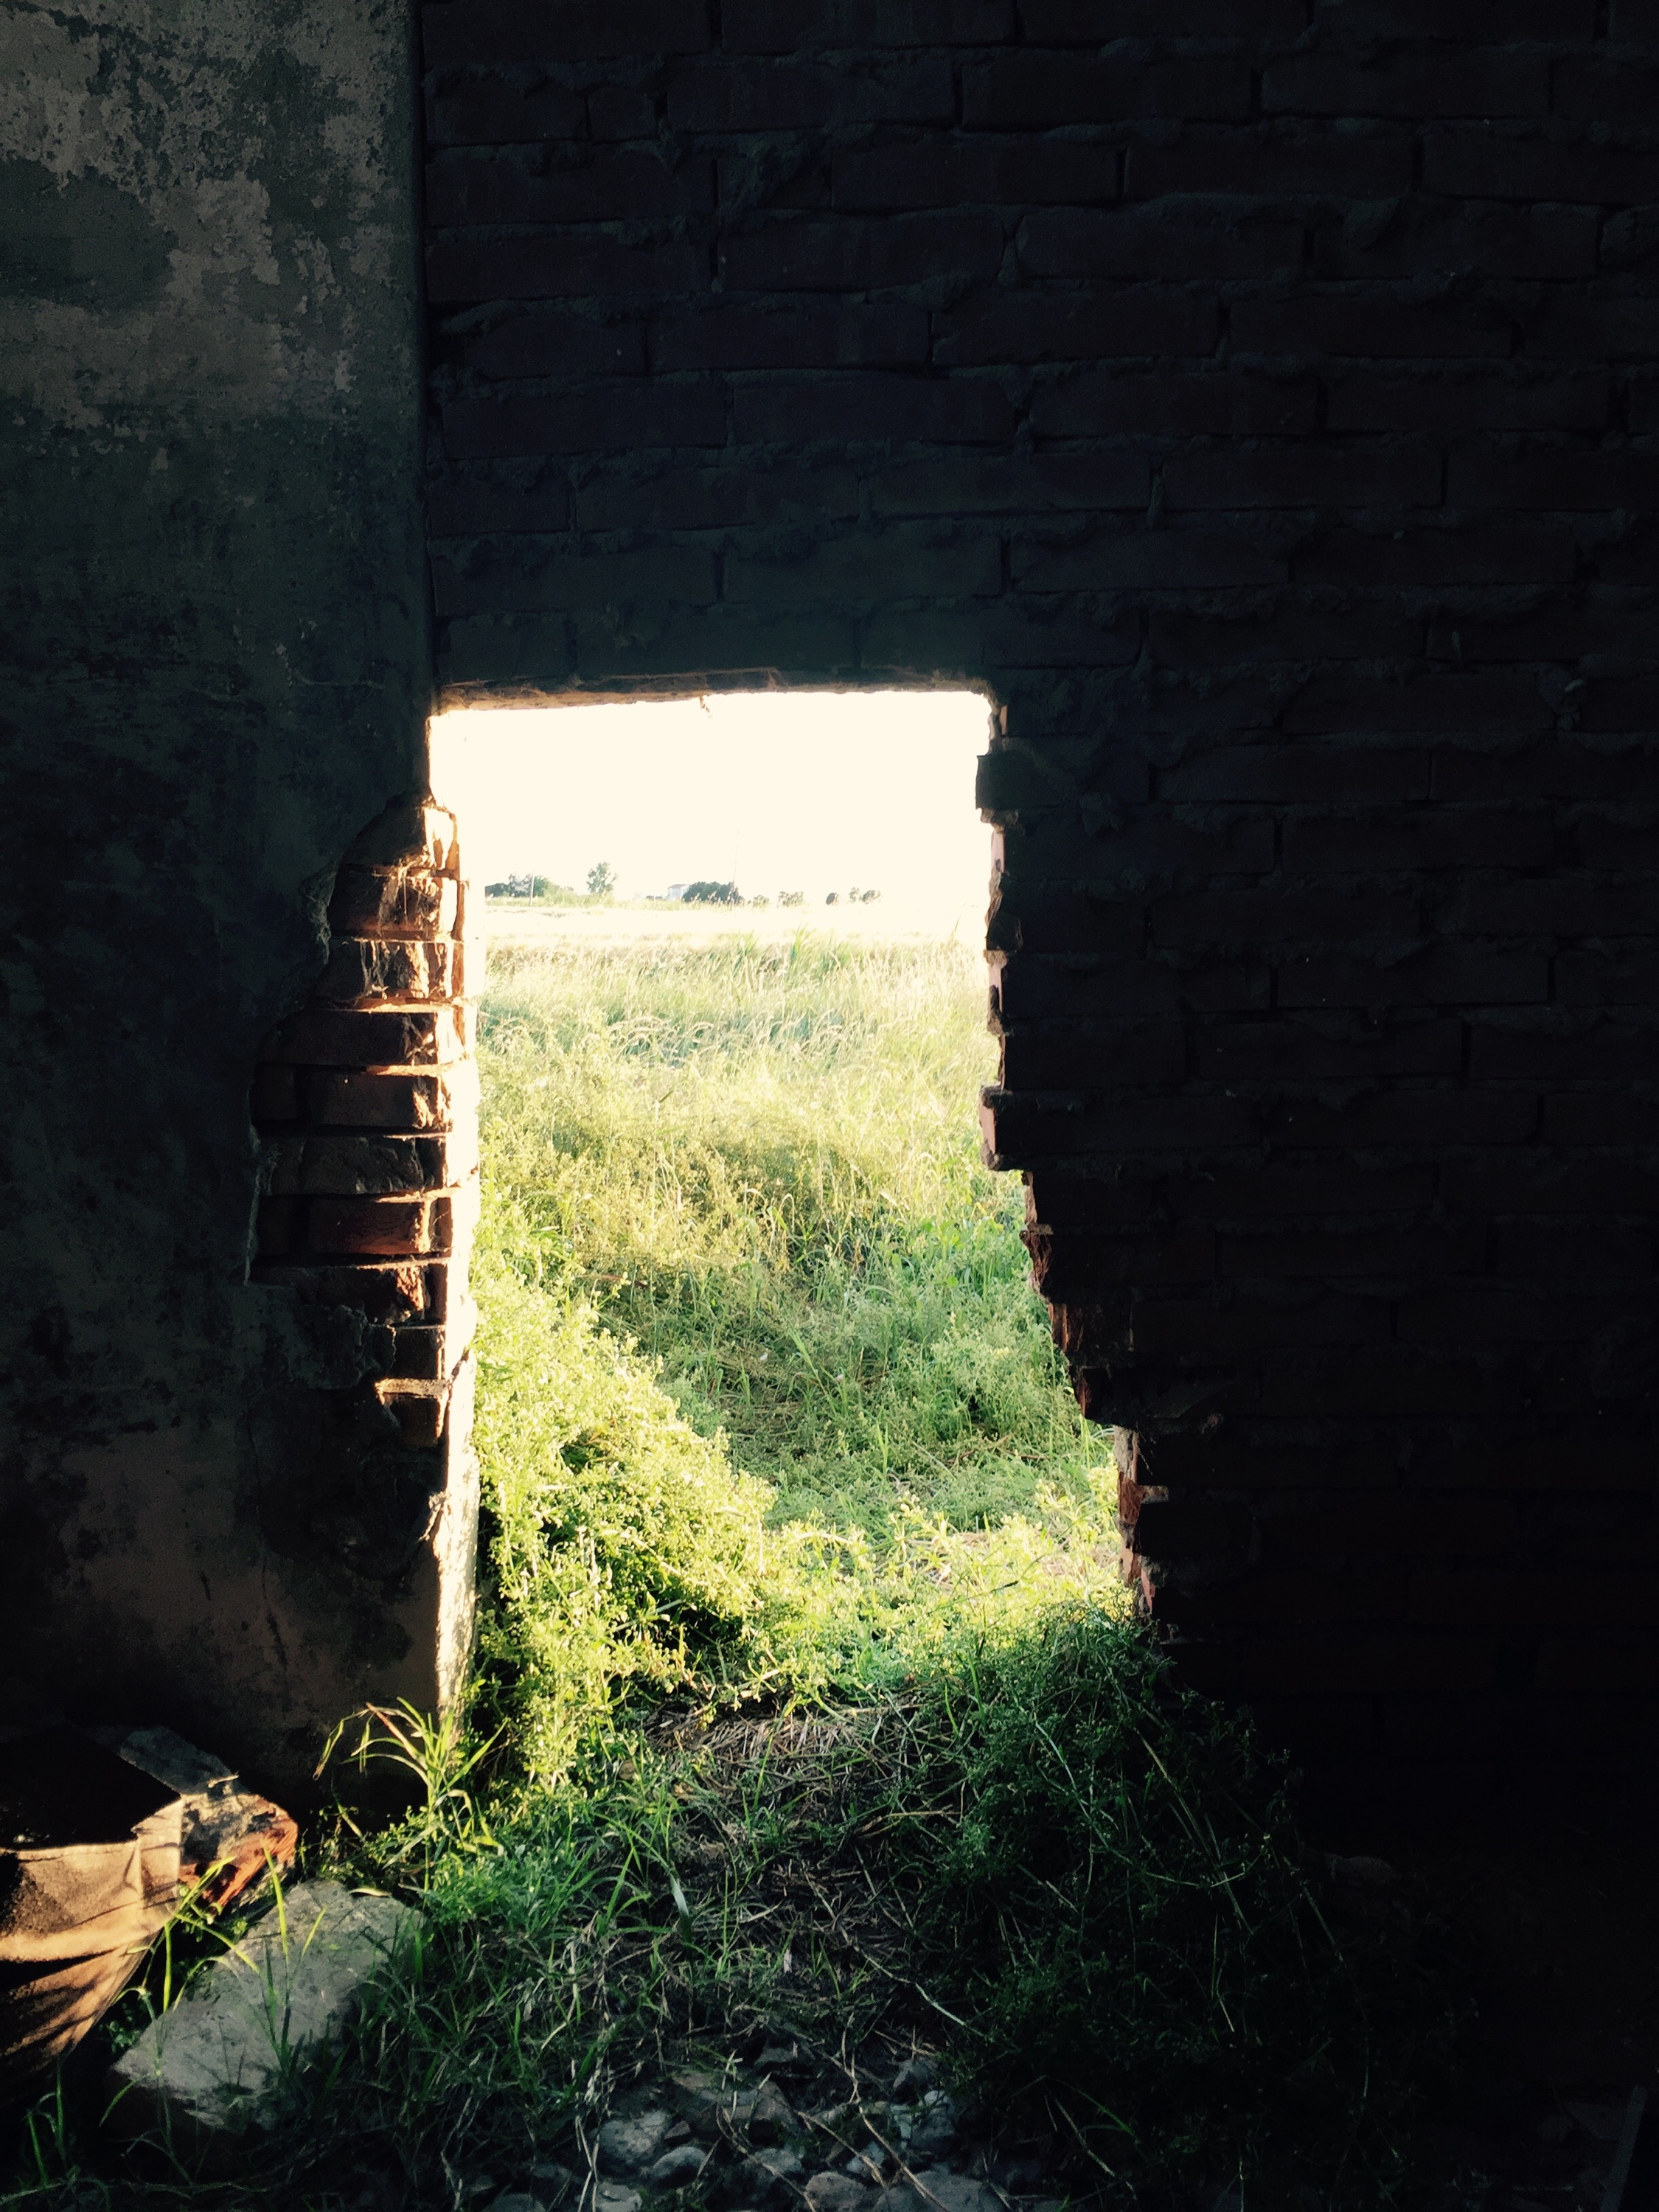 Bricked up doorway looking at field, Italy